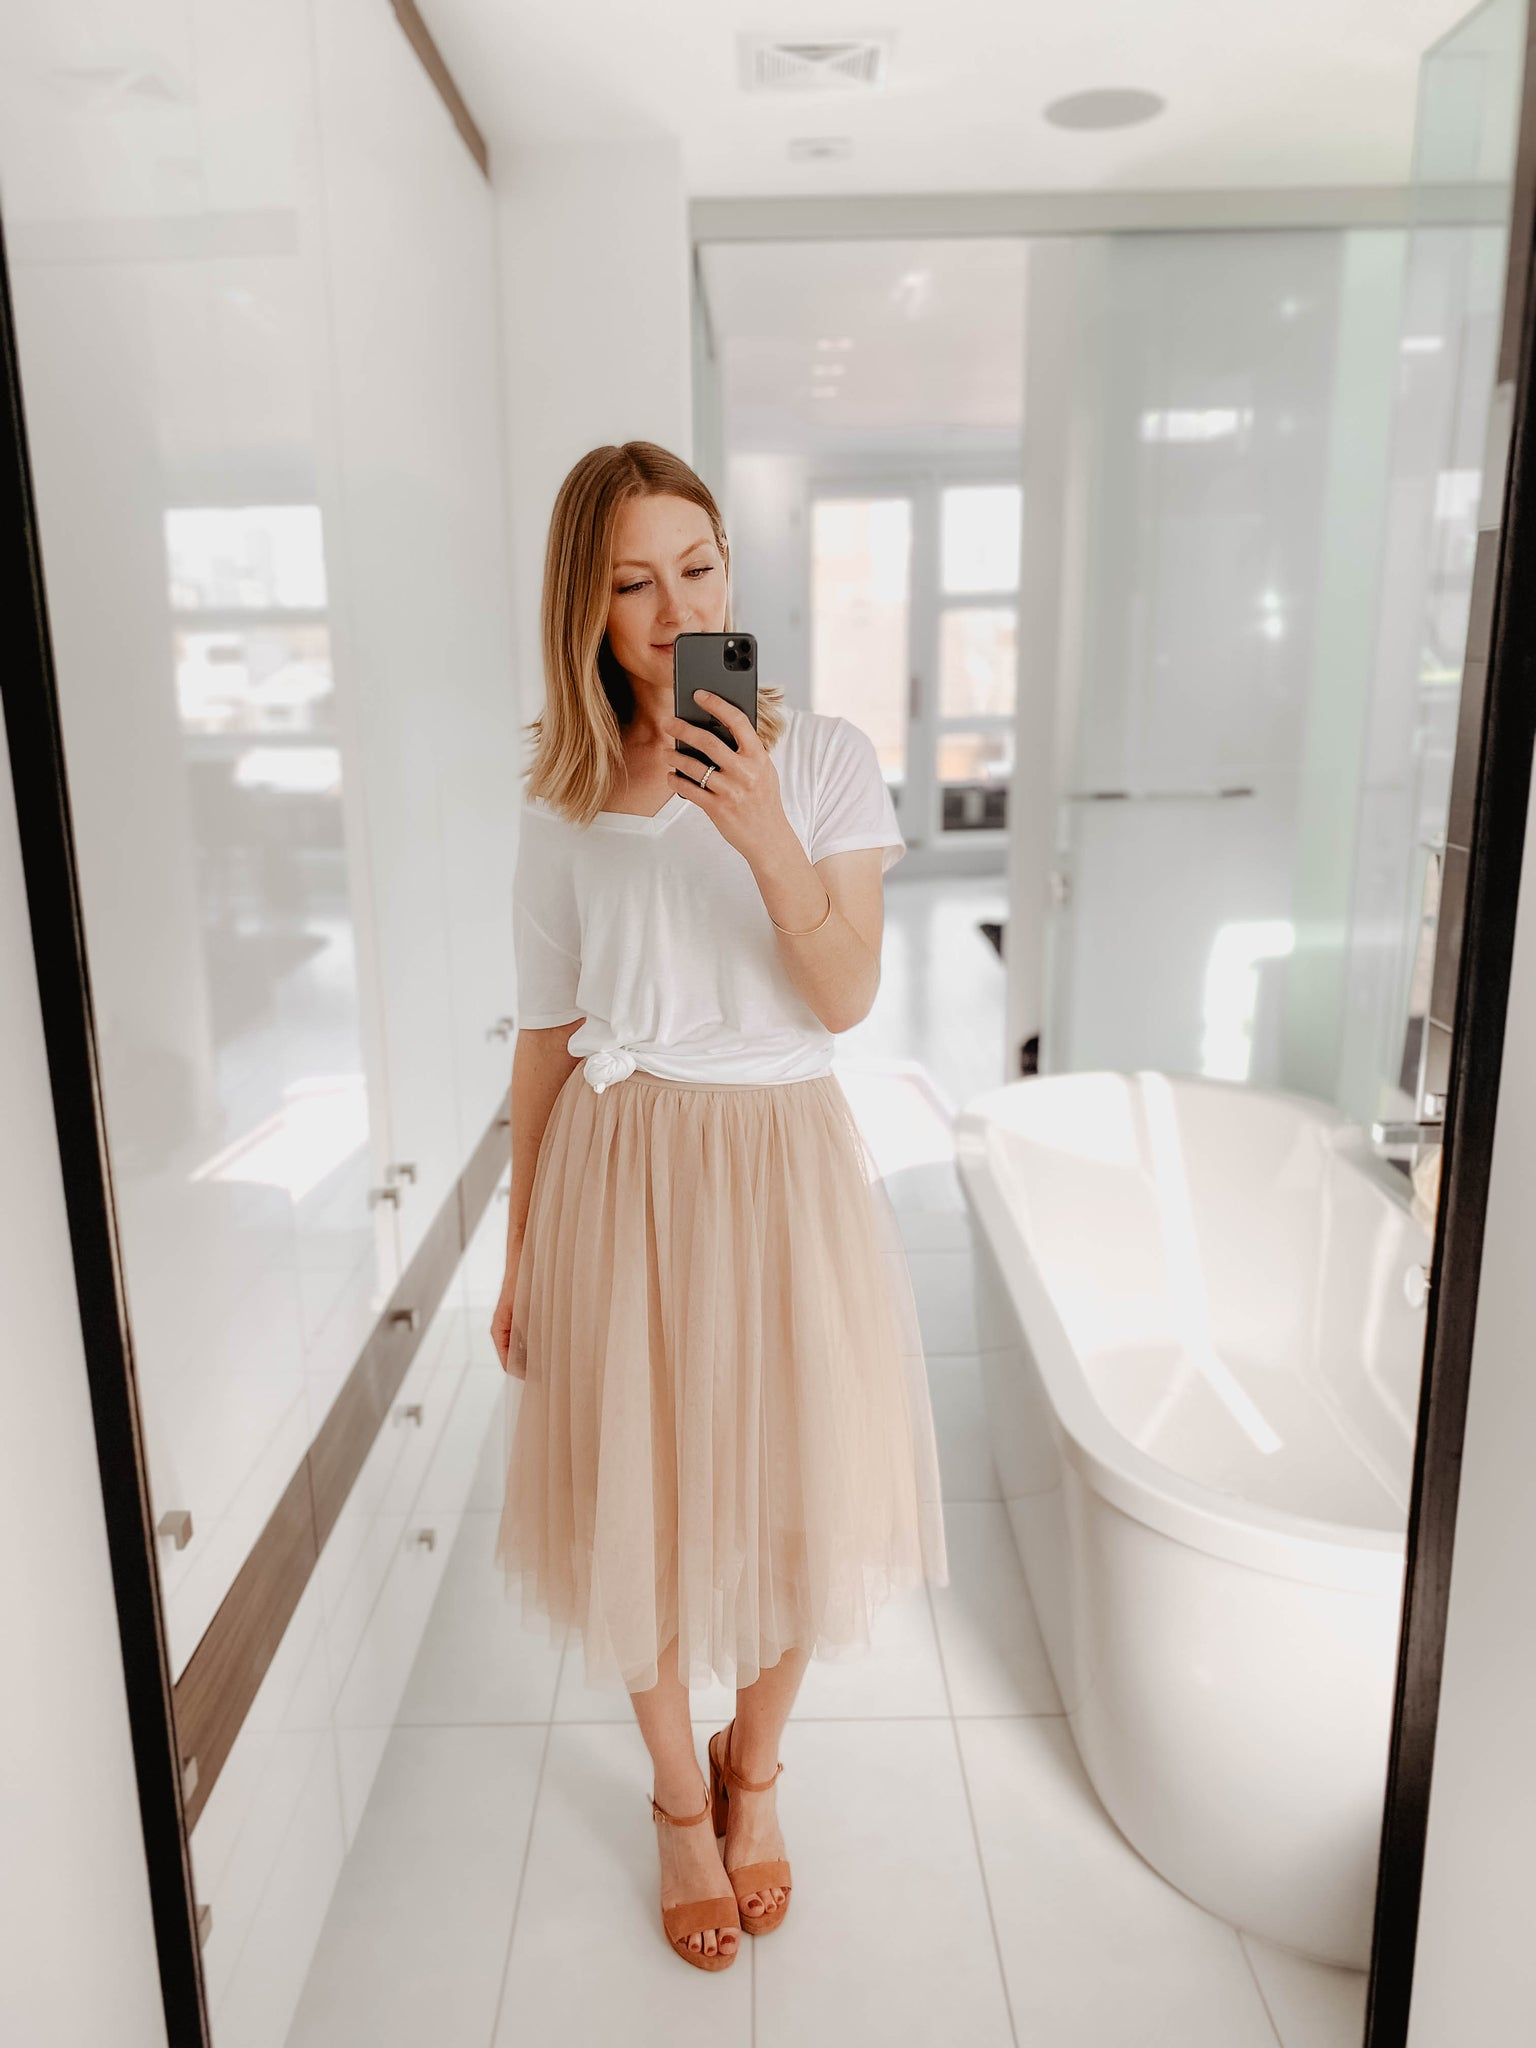 White t-shirt with light pink skirt